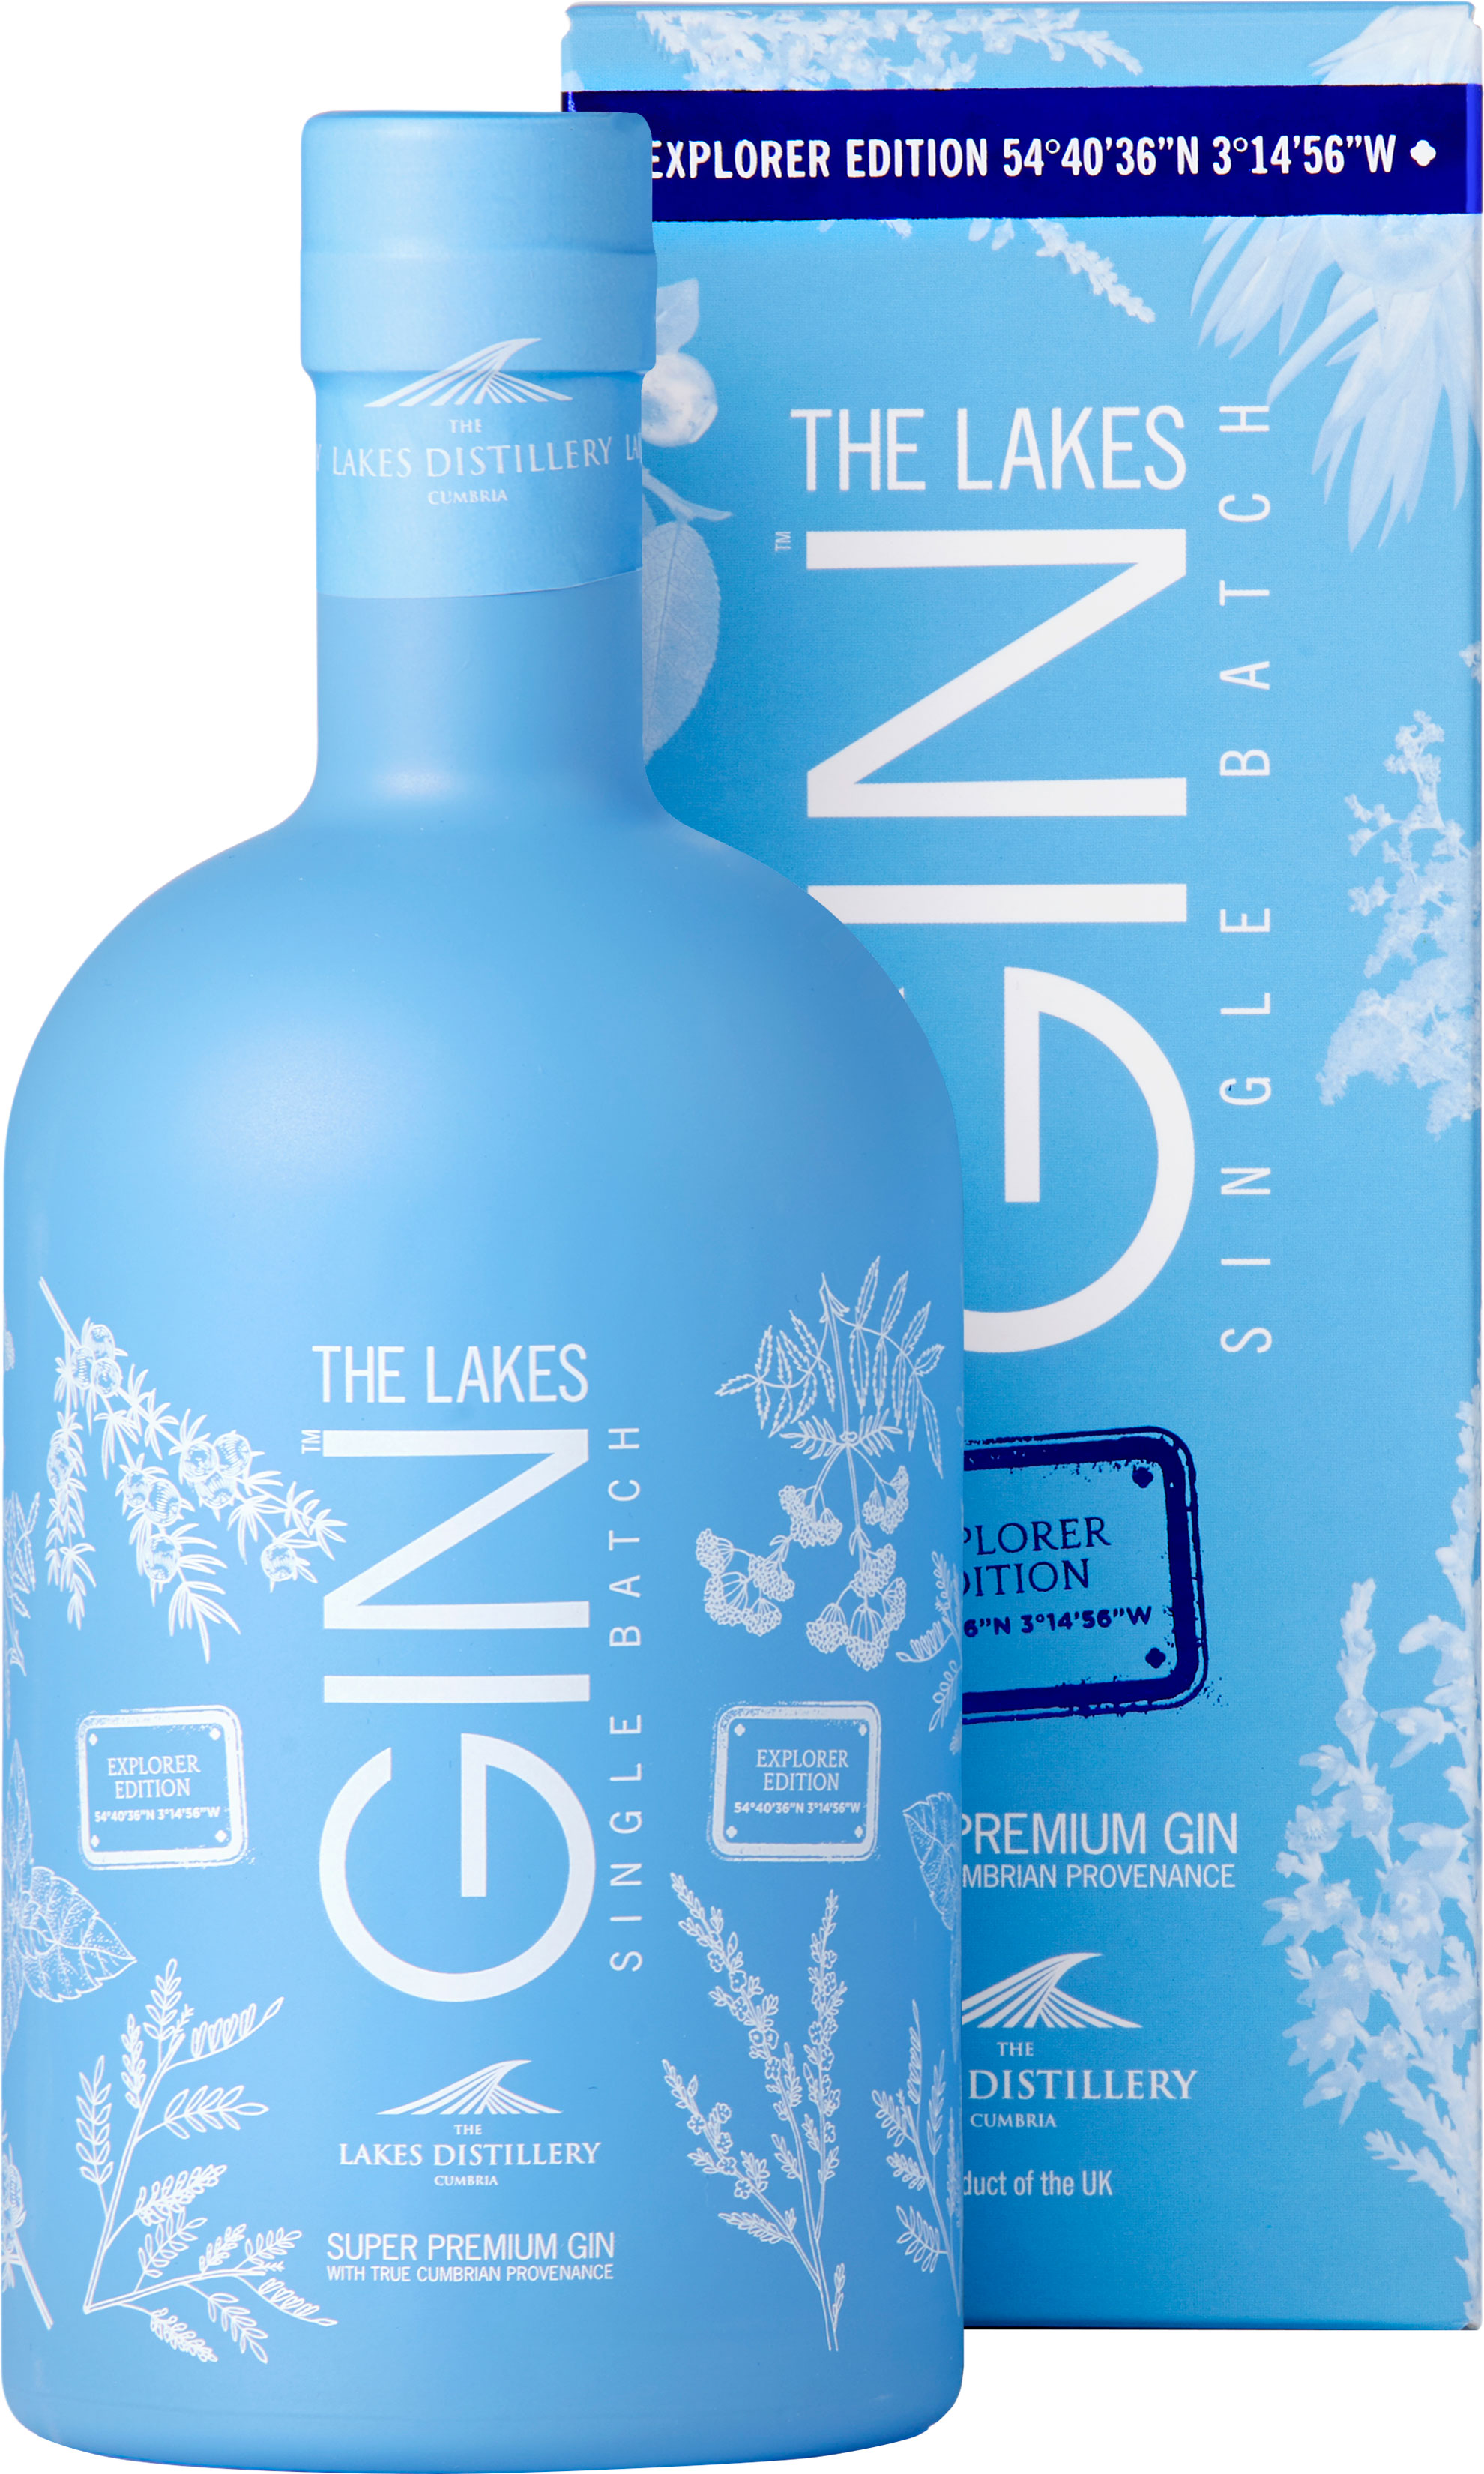 The Lakes - Explorer Gin 70cl Bottle